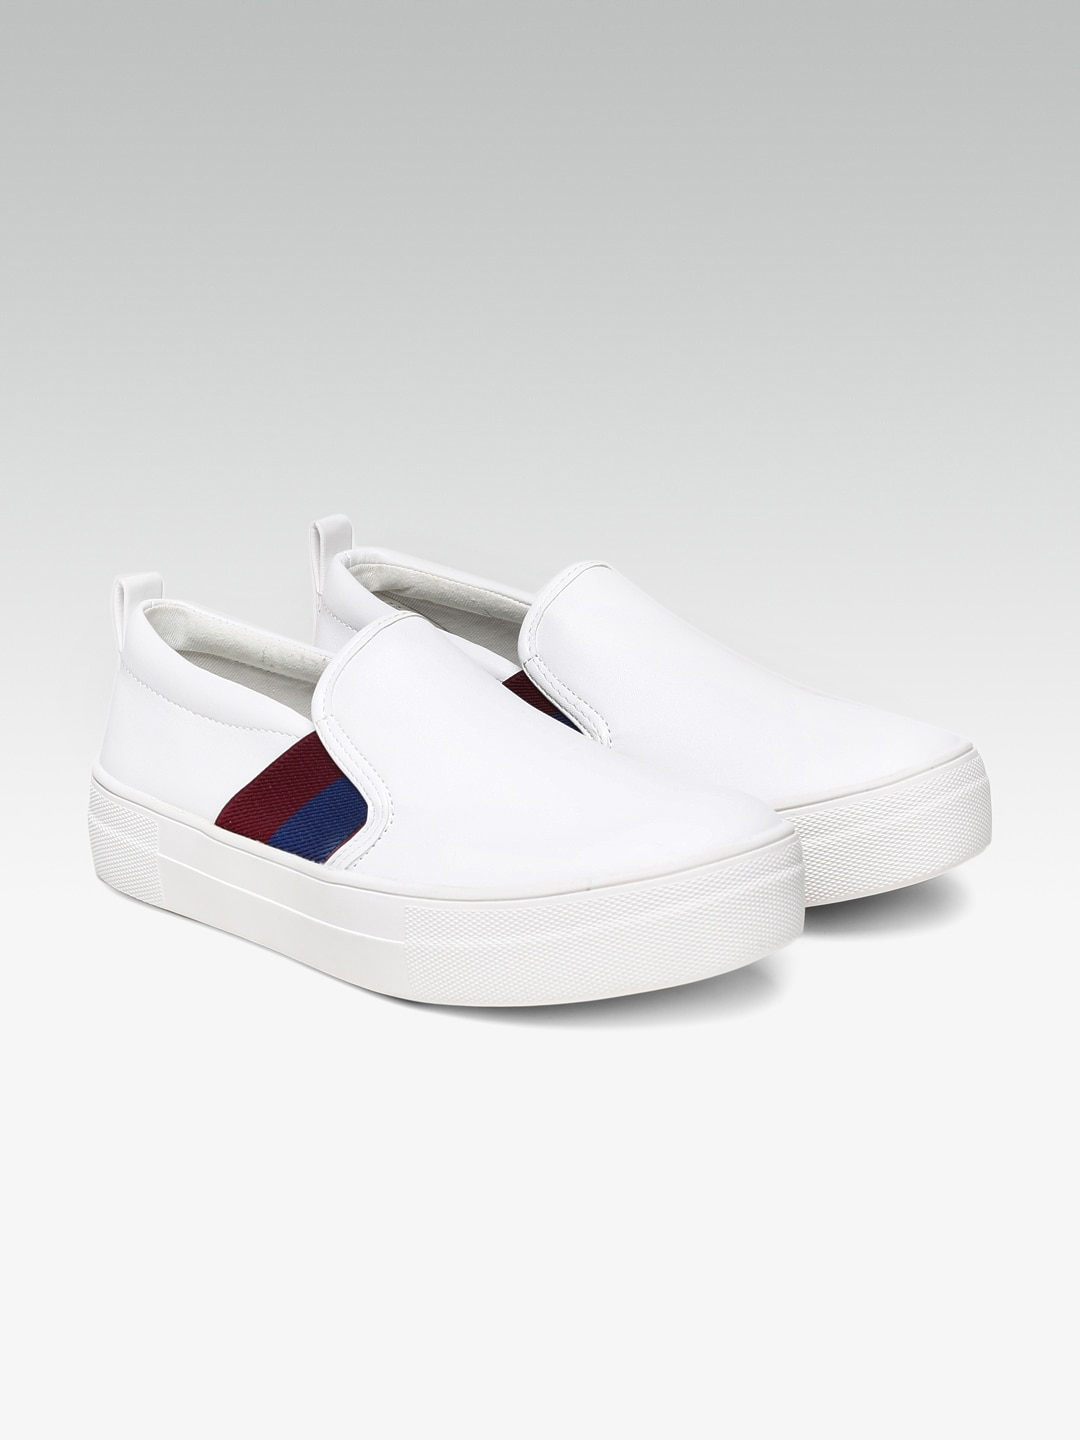 e64962d82d6 Steve Madden Sneakers Casual Shoes - Buy Steve Madden Sneakers Casual Shoes  online in India